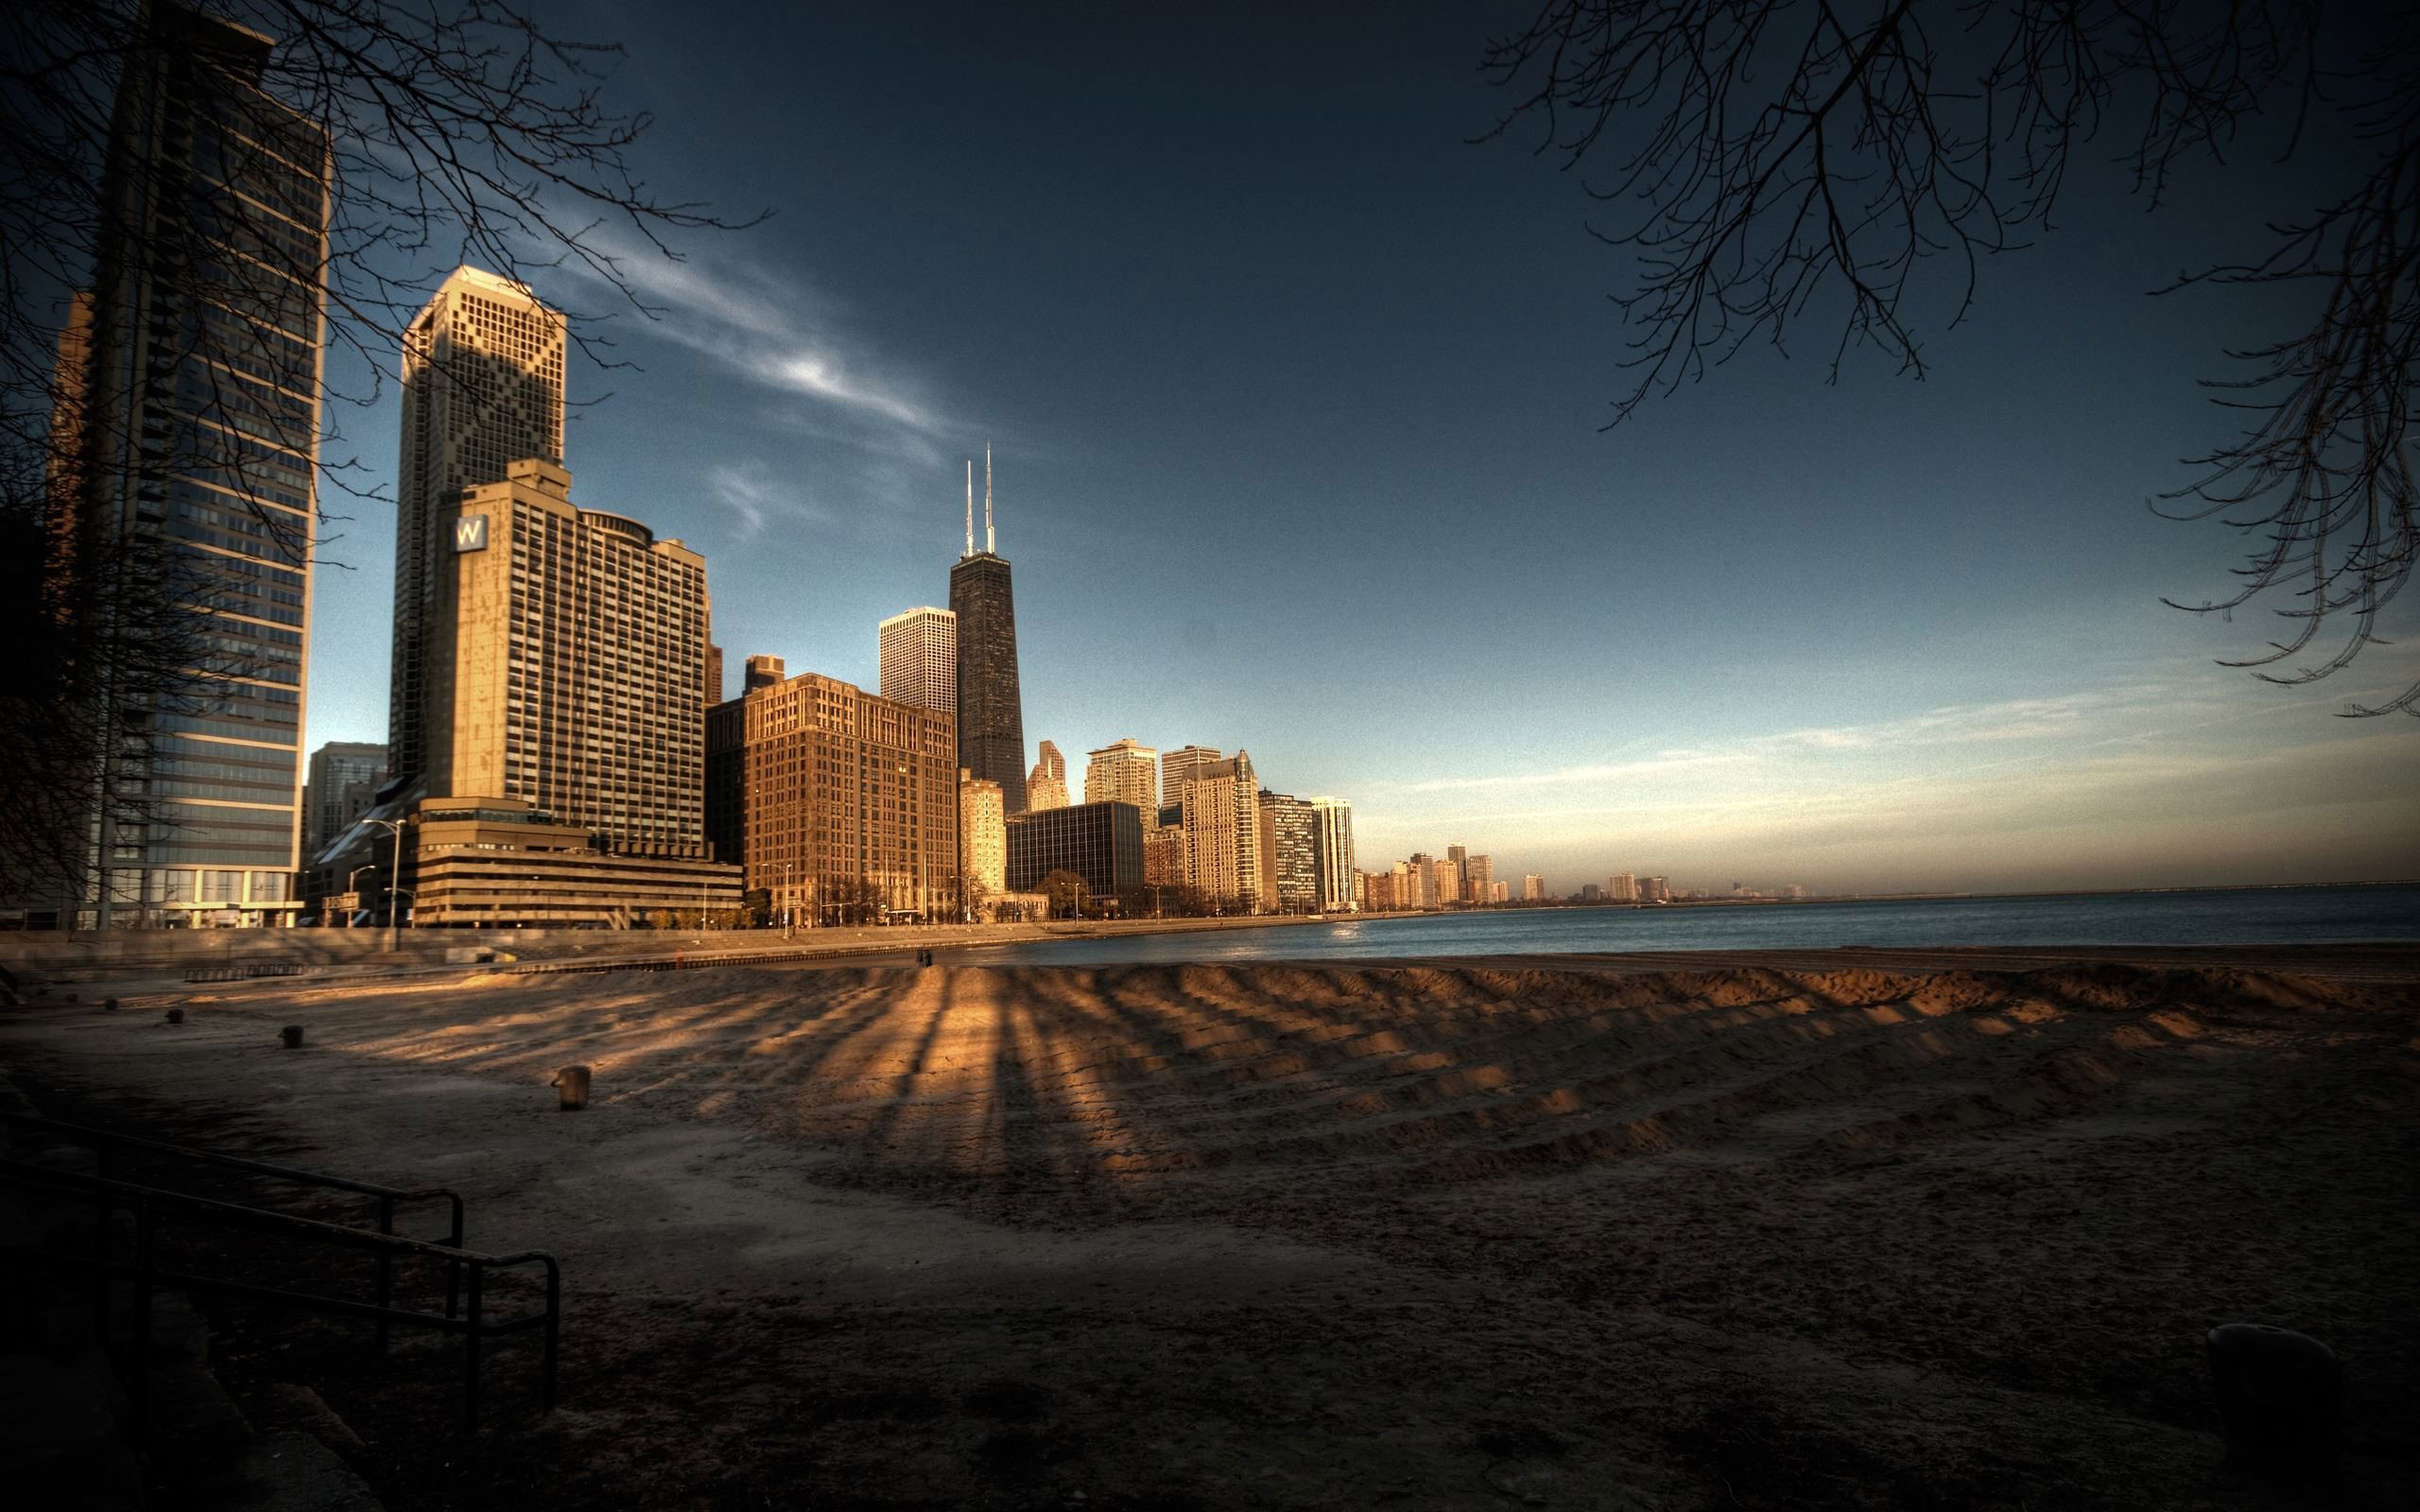 2560x1600 Urban Chicago Landscape Widescreen HD Wallpapers in HD